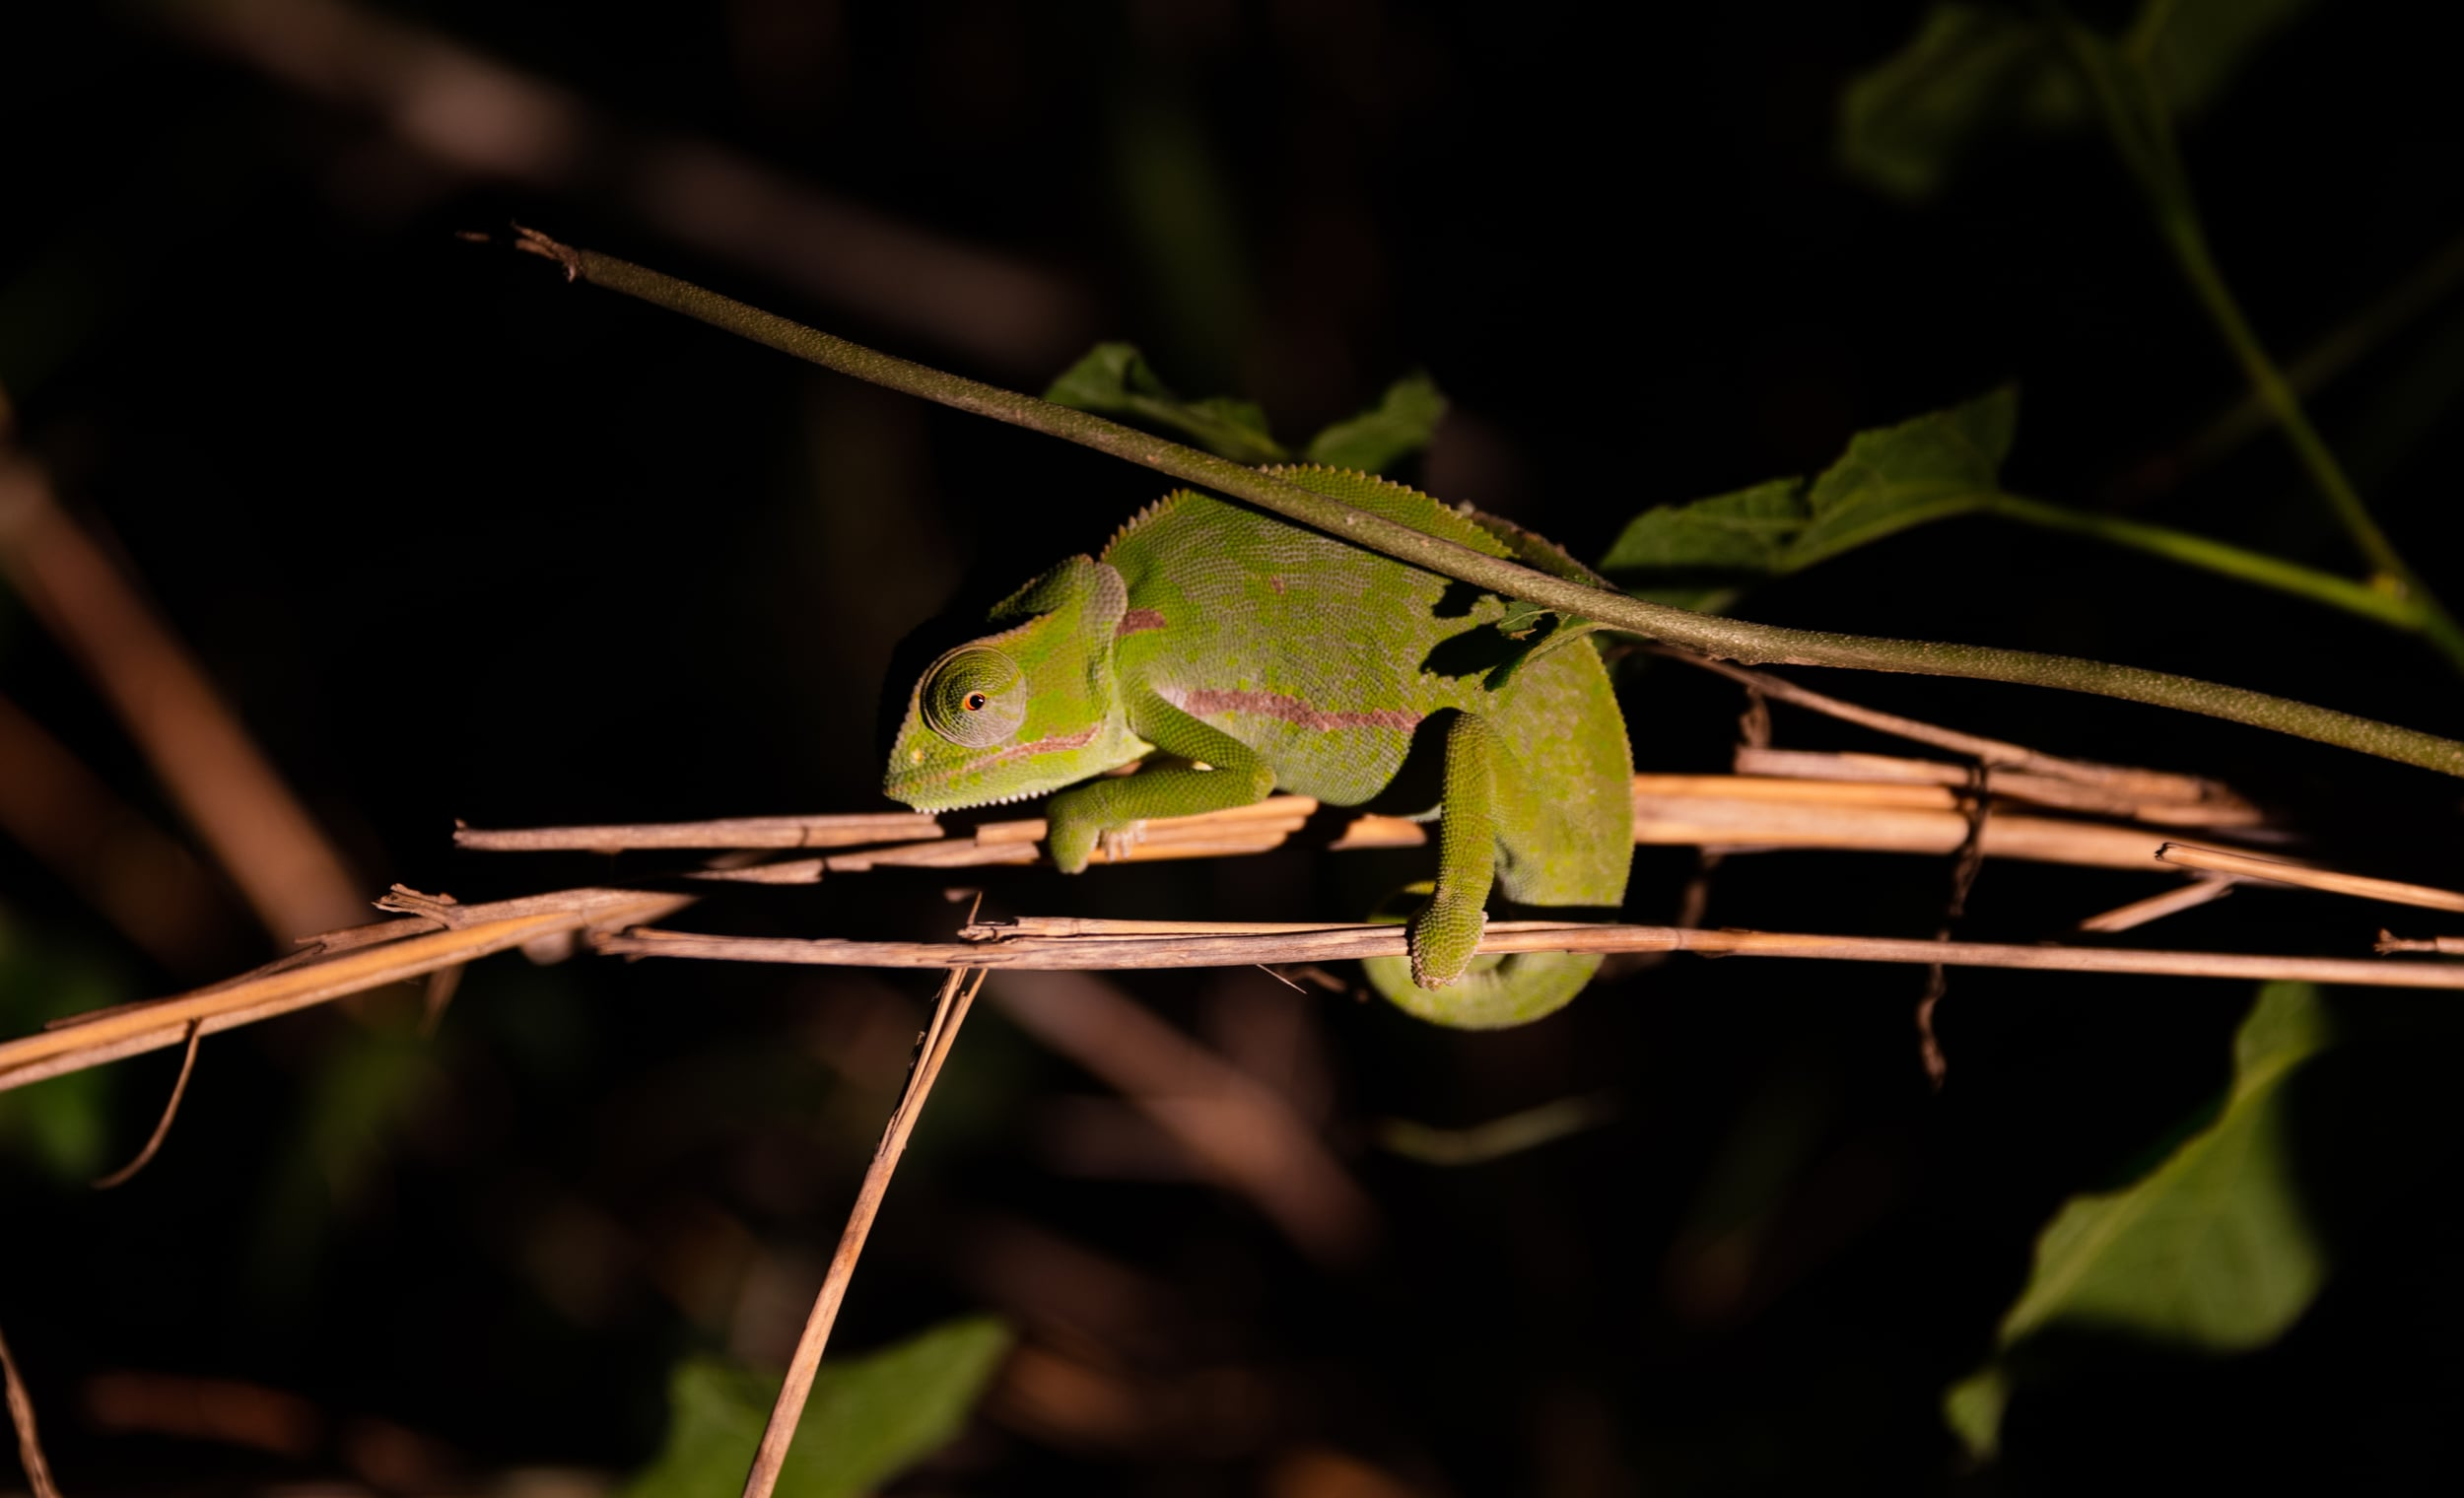 Chameleon,  Sabi Sabi, Kruger National Park, South Africa